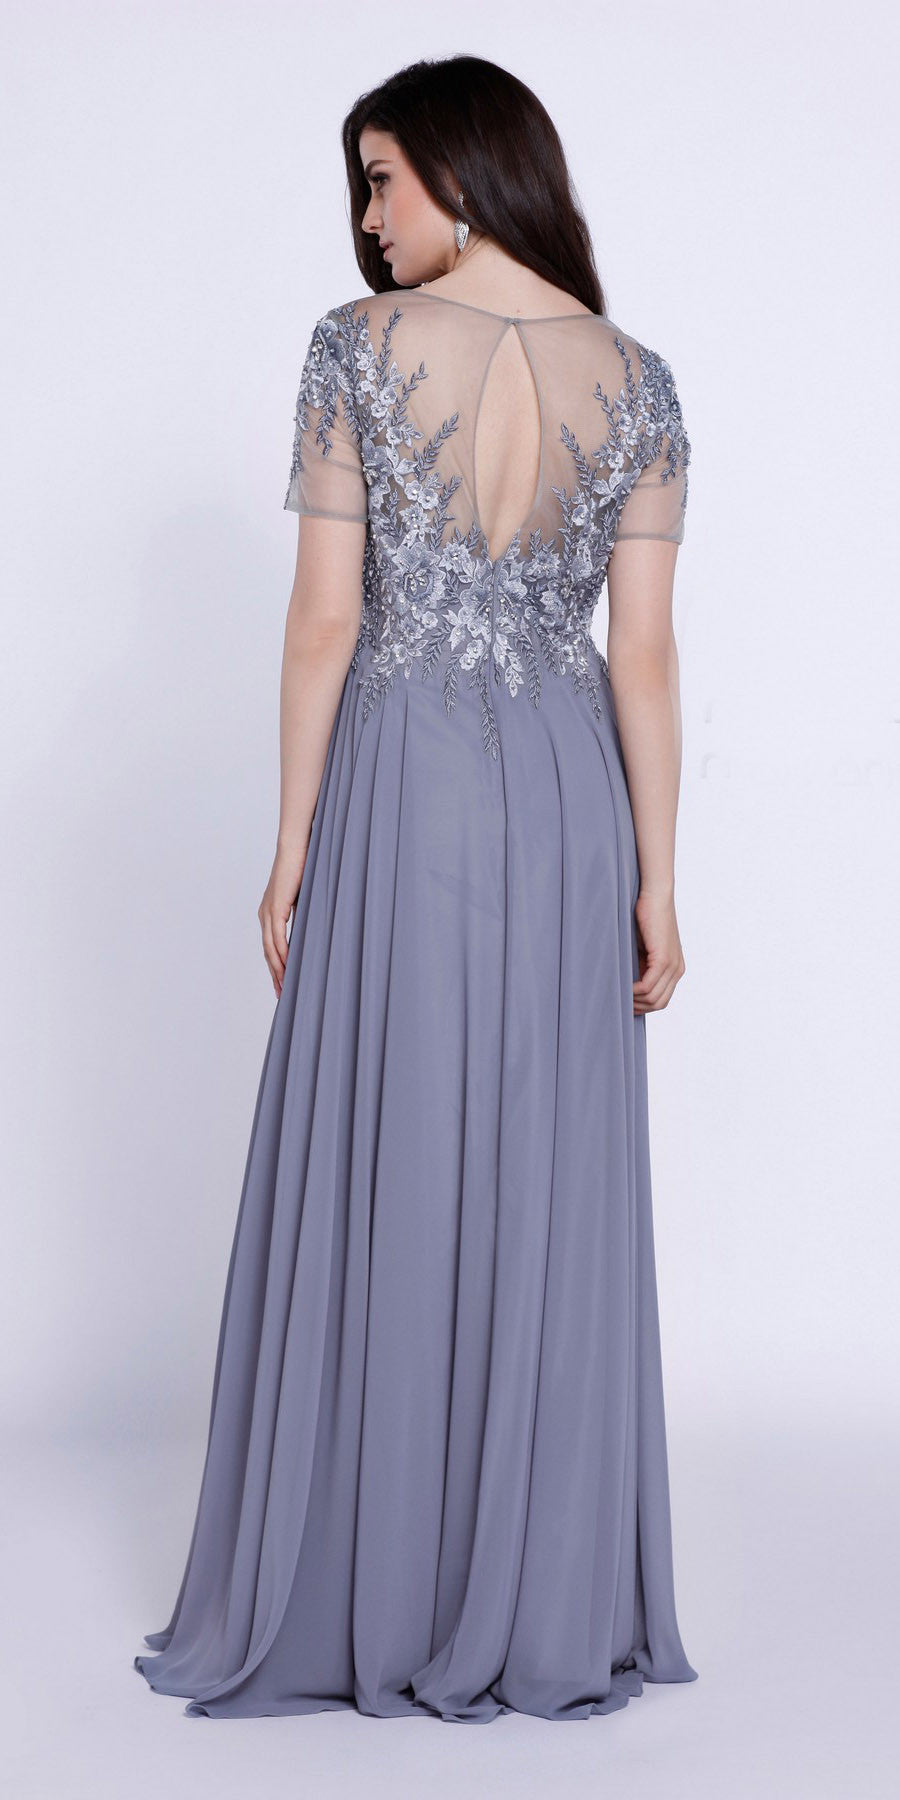 Short Sleeves Applique Bodice Floor Length Formal Dress Silver